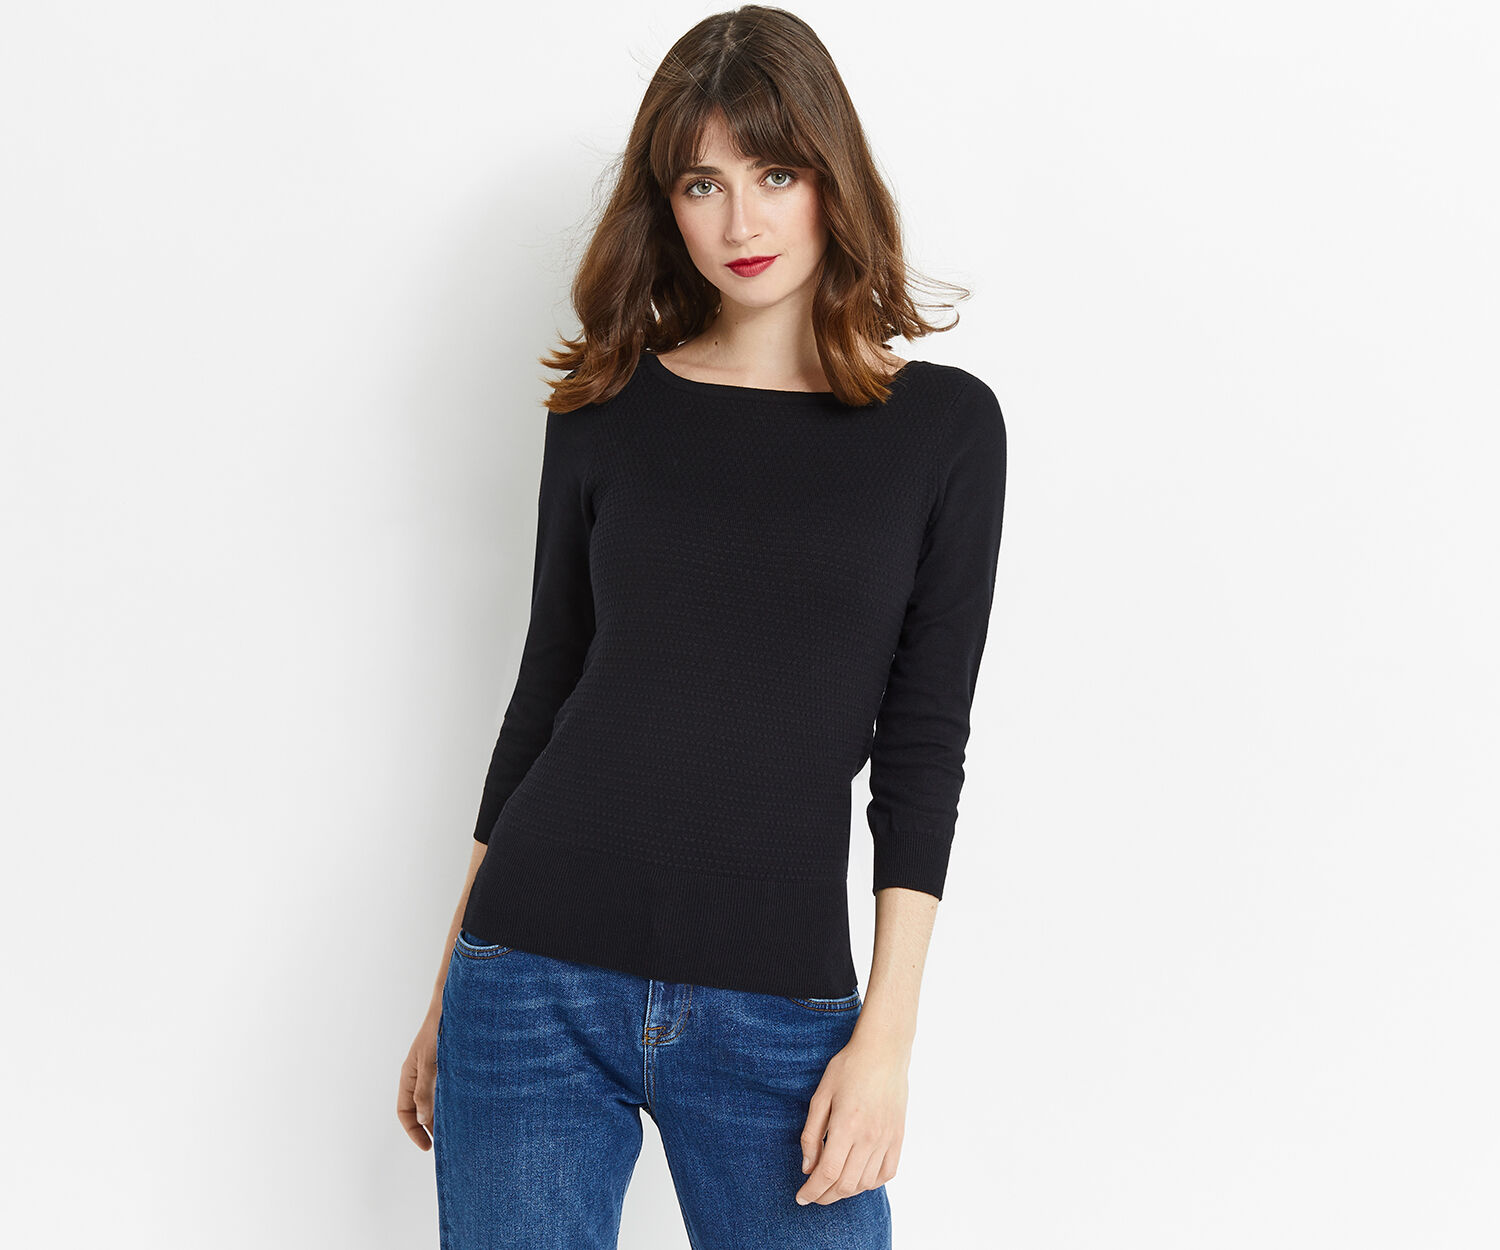 Oasis, TEXTURED KNIT Black 1